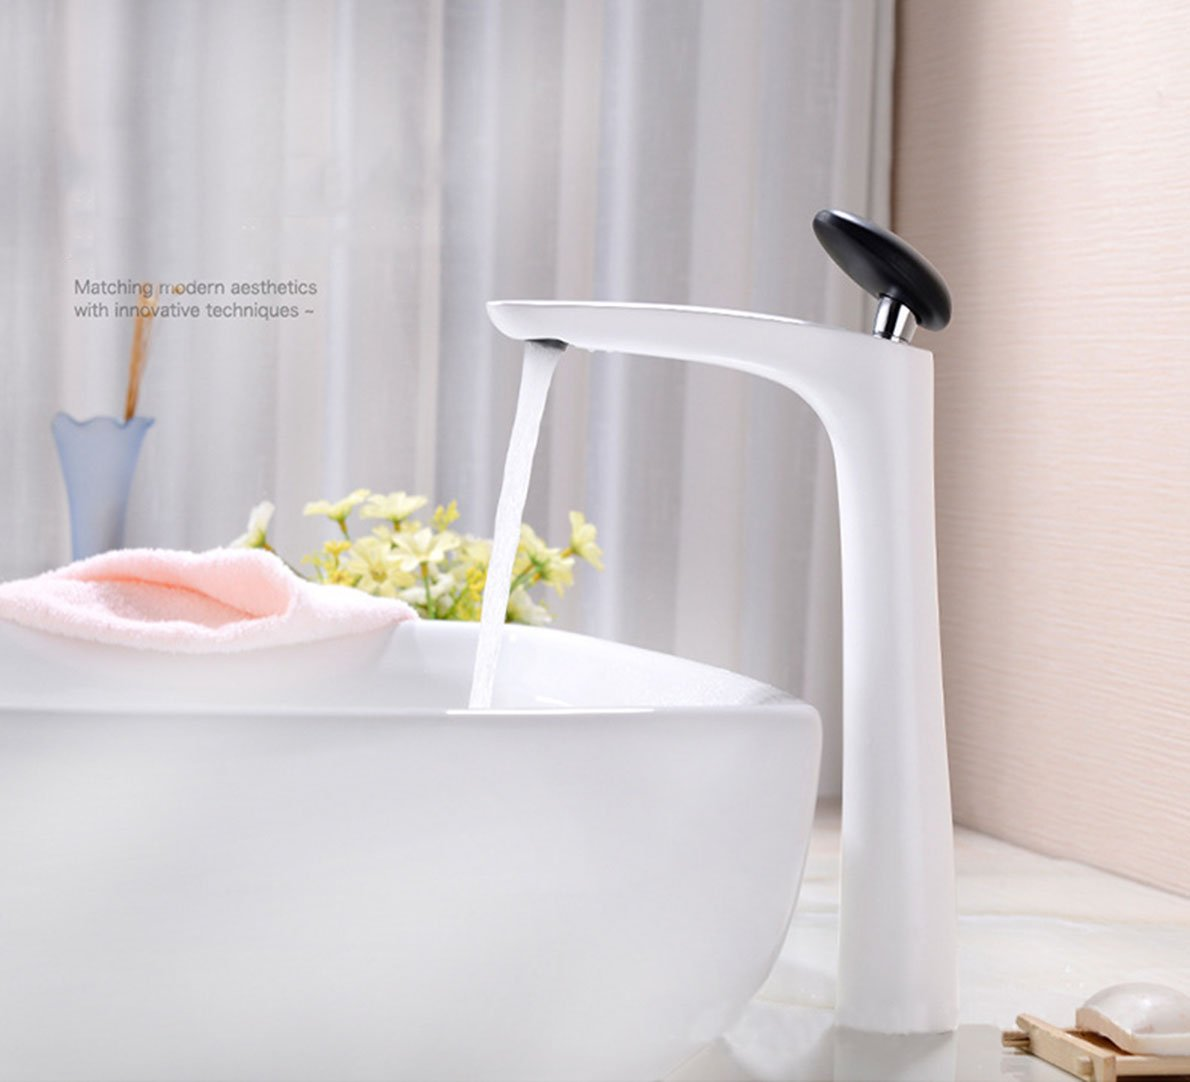 White high QJIAXING Modern Copper Porcelain Lavatory Faucet Bathroom Sink Mixing White Taps,White,Short